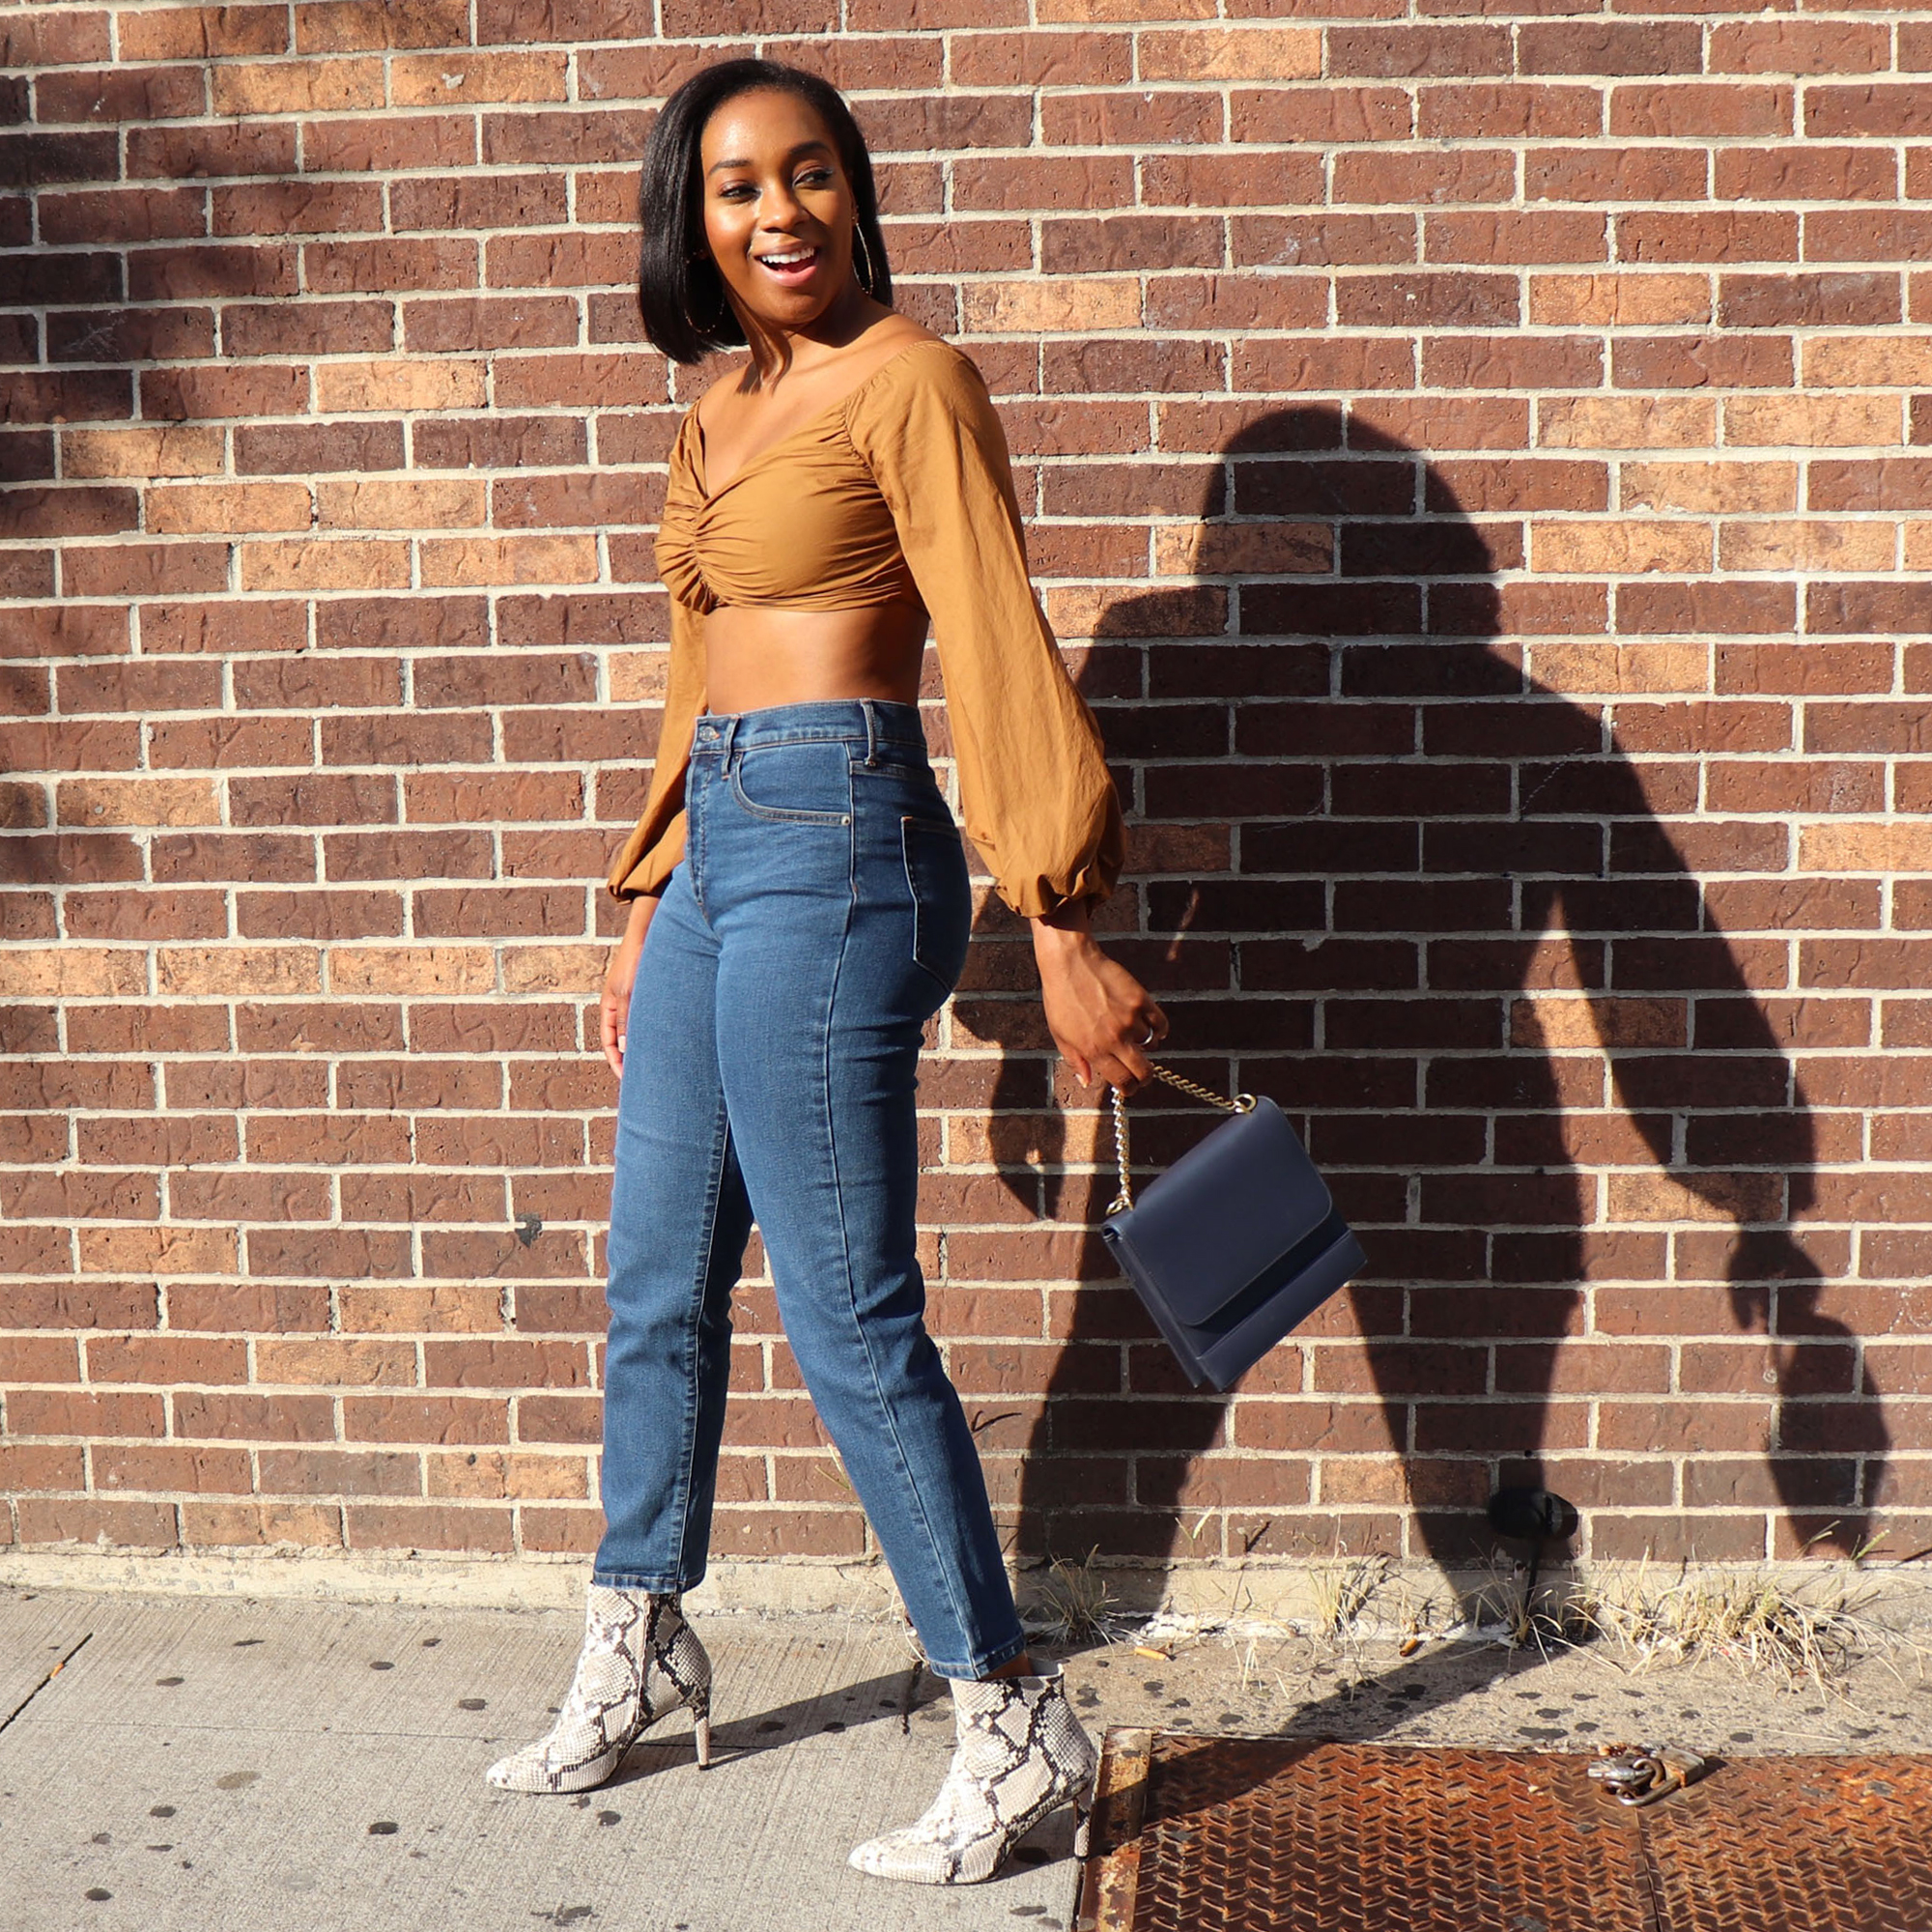 Everlane Authentic Stretch Jeans Alexis Bennett